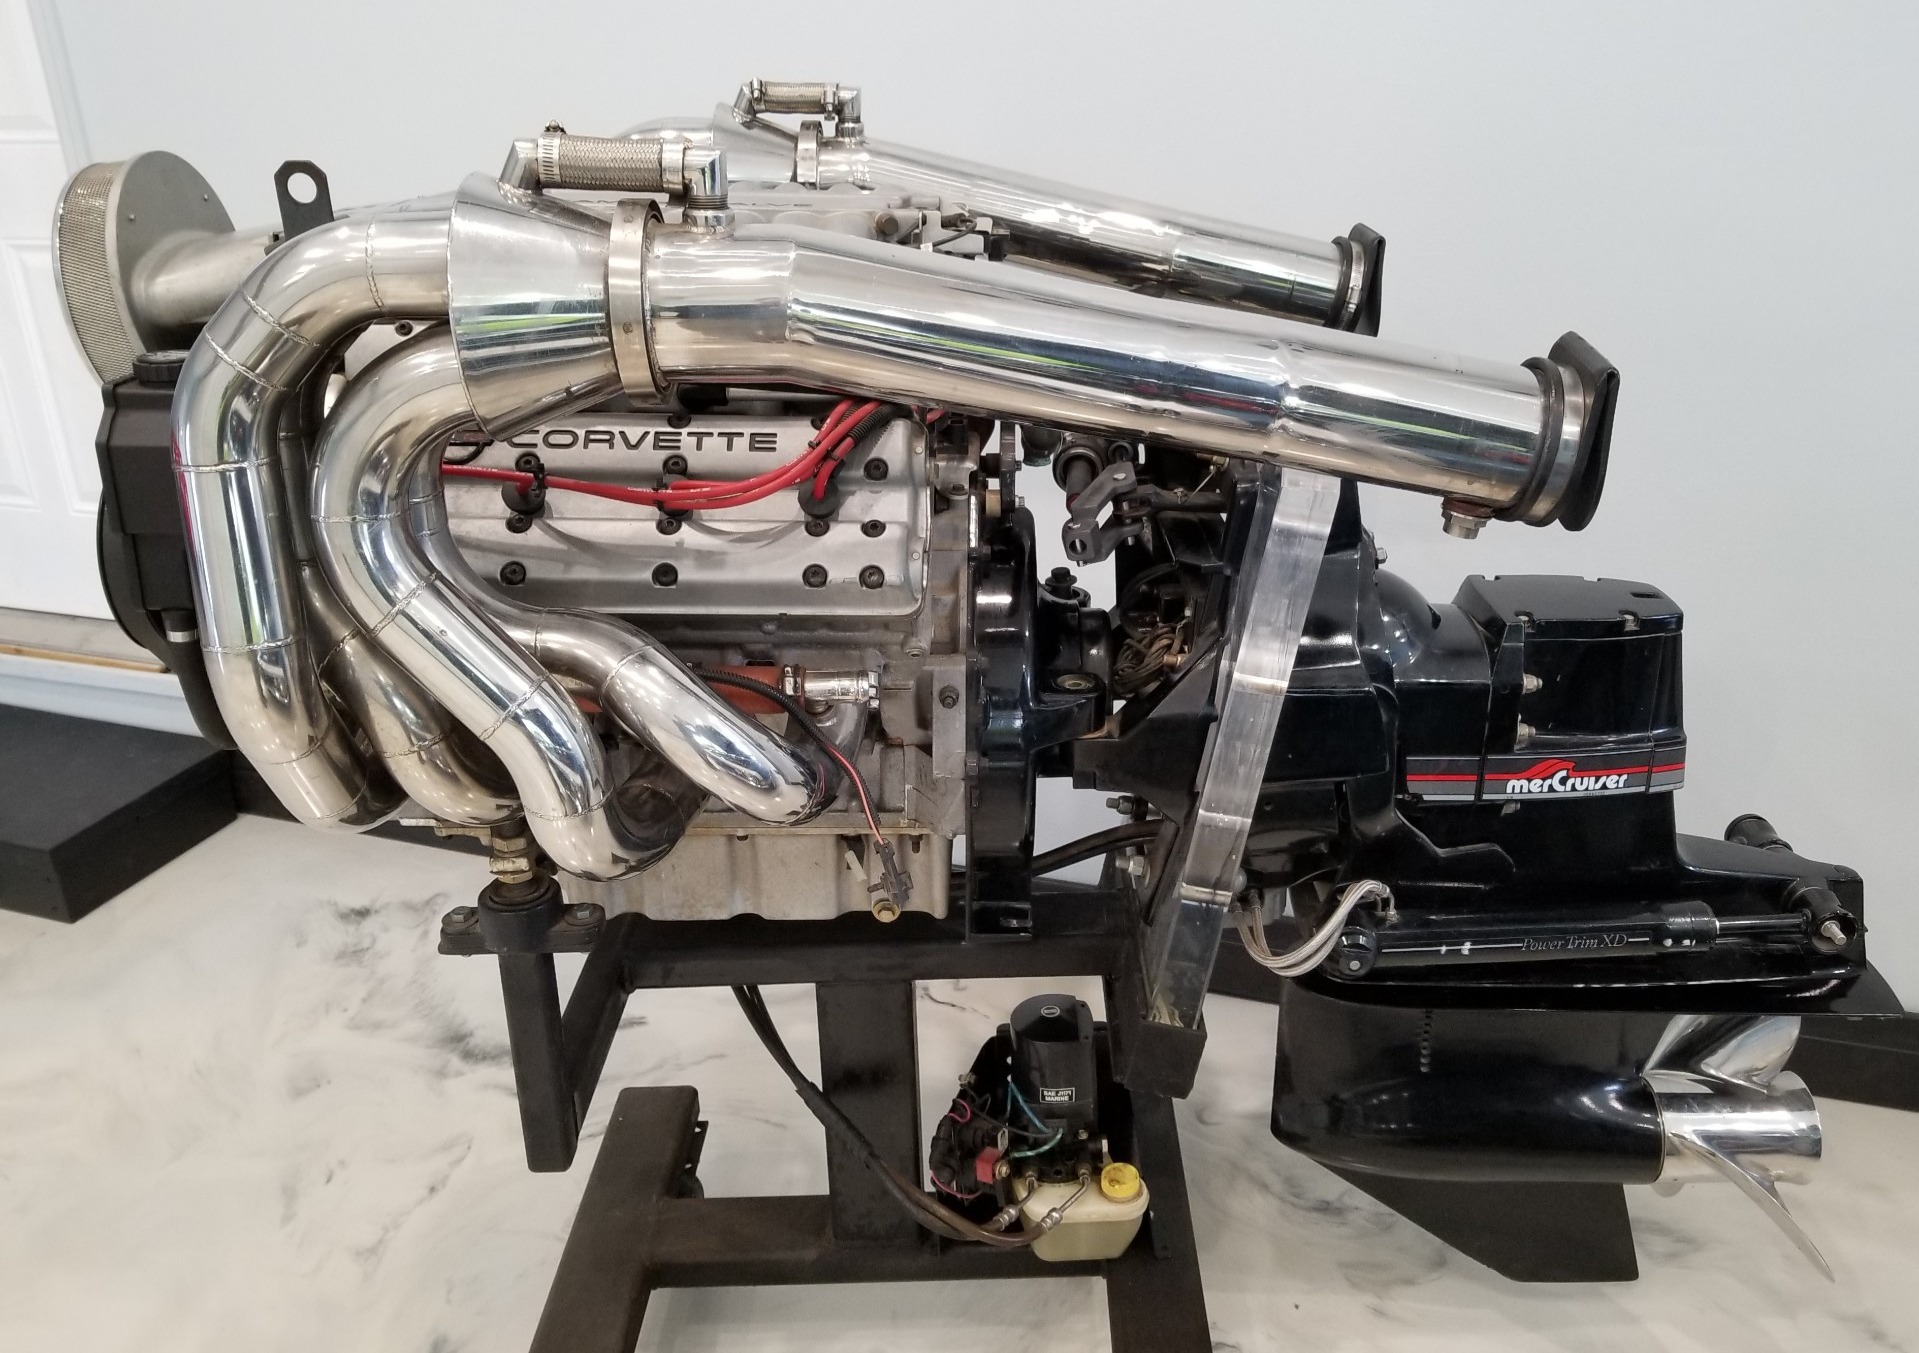 hight resolution of no reserve 1991 mercruiser lt5 wette vette marine engine for sale on bat auctions sold for 10 000 on january 7 2019 lot 15 363 bring a trailer